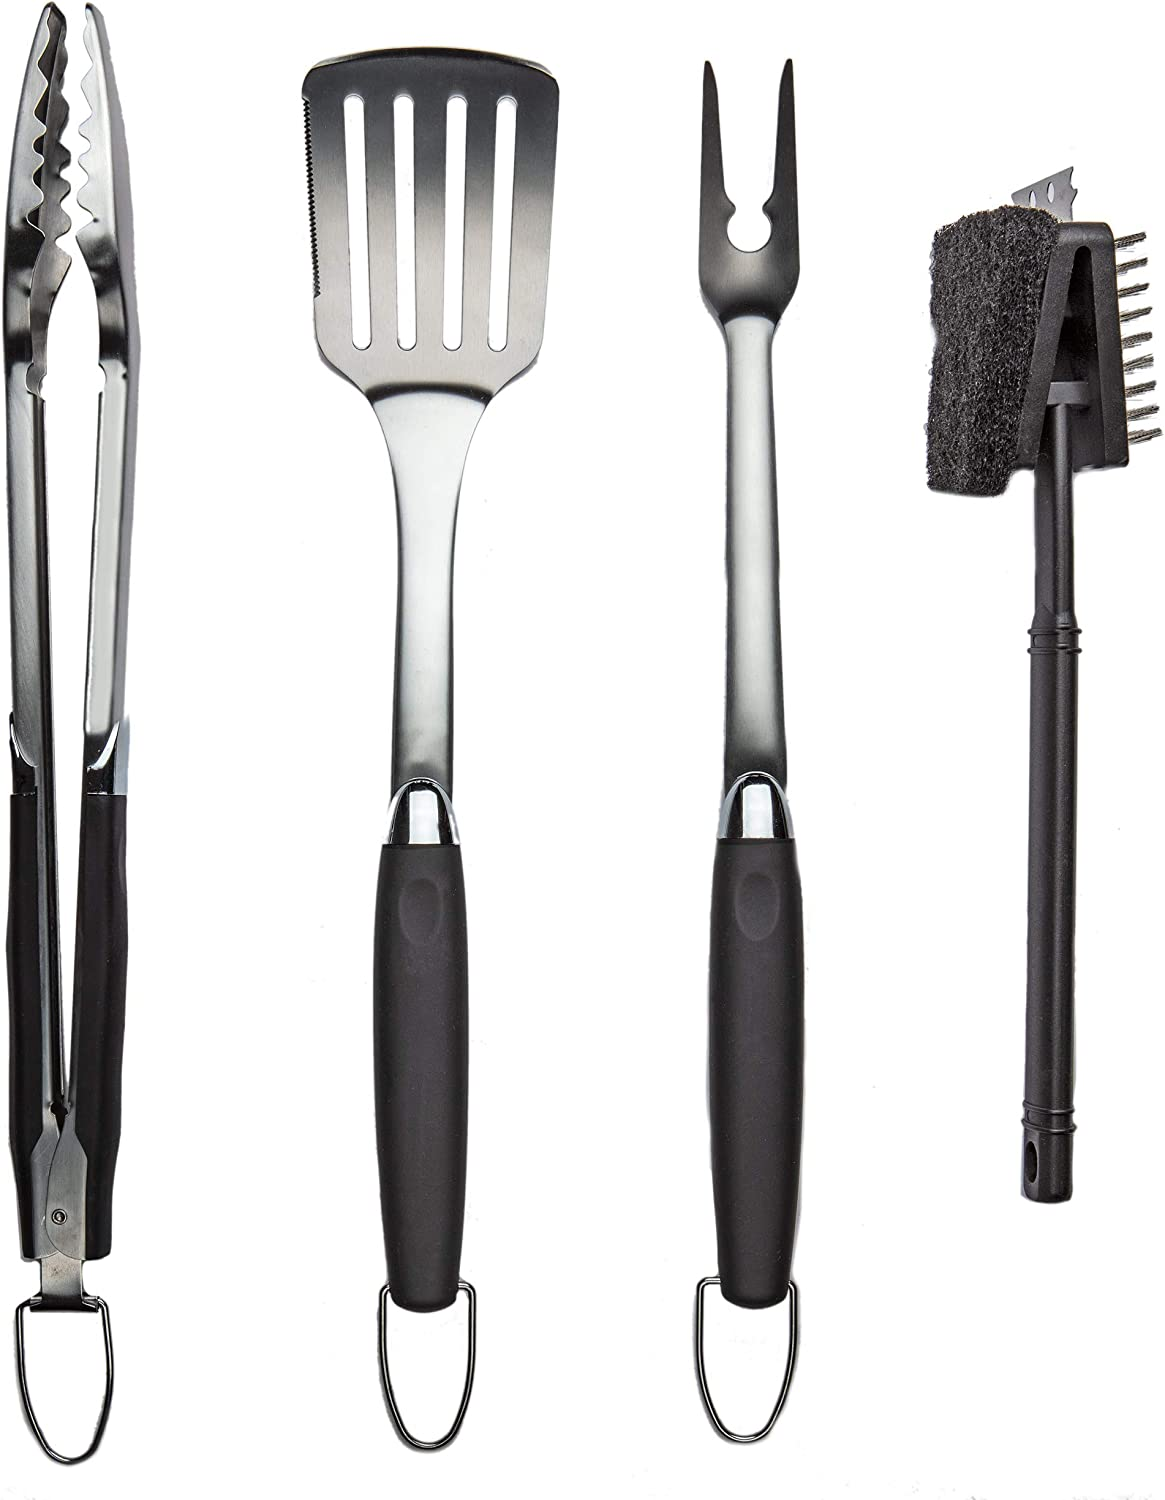 Simplistex Stainless Steel BBQ Grilling Tool Accessories Set w/Tongs, Spatula, Fork and Brush, for Outdoor Barbecue Grills (4 Piece Kit) : Garden & Outdoor